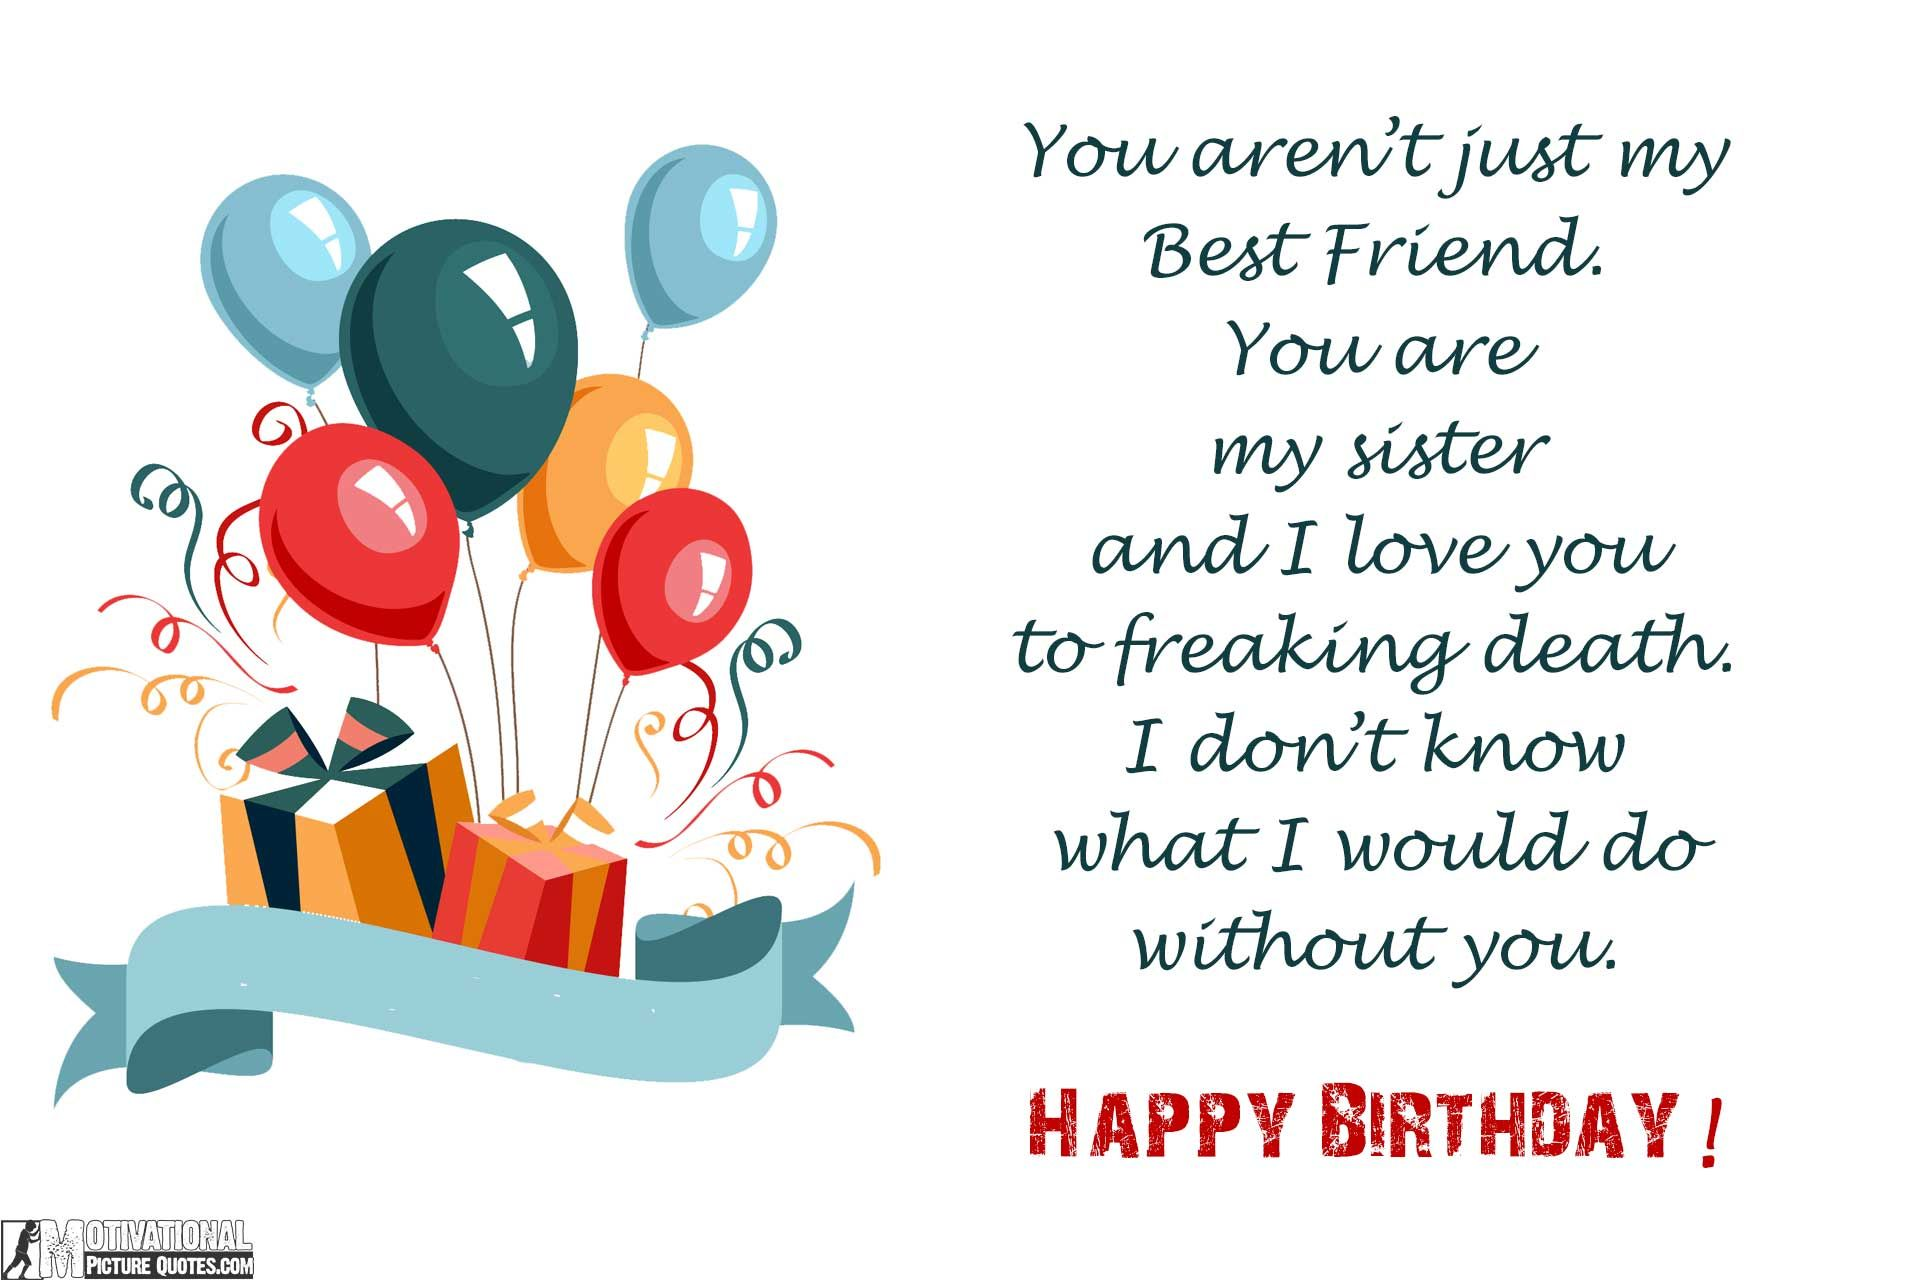 Inspirational Birthday Quotes Images Birthday wishes for